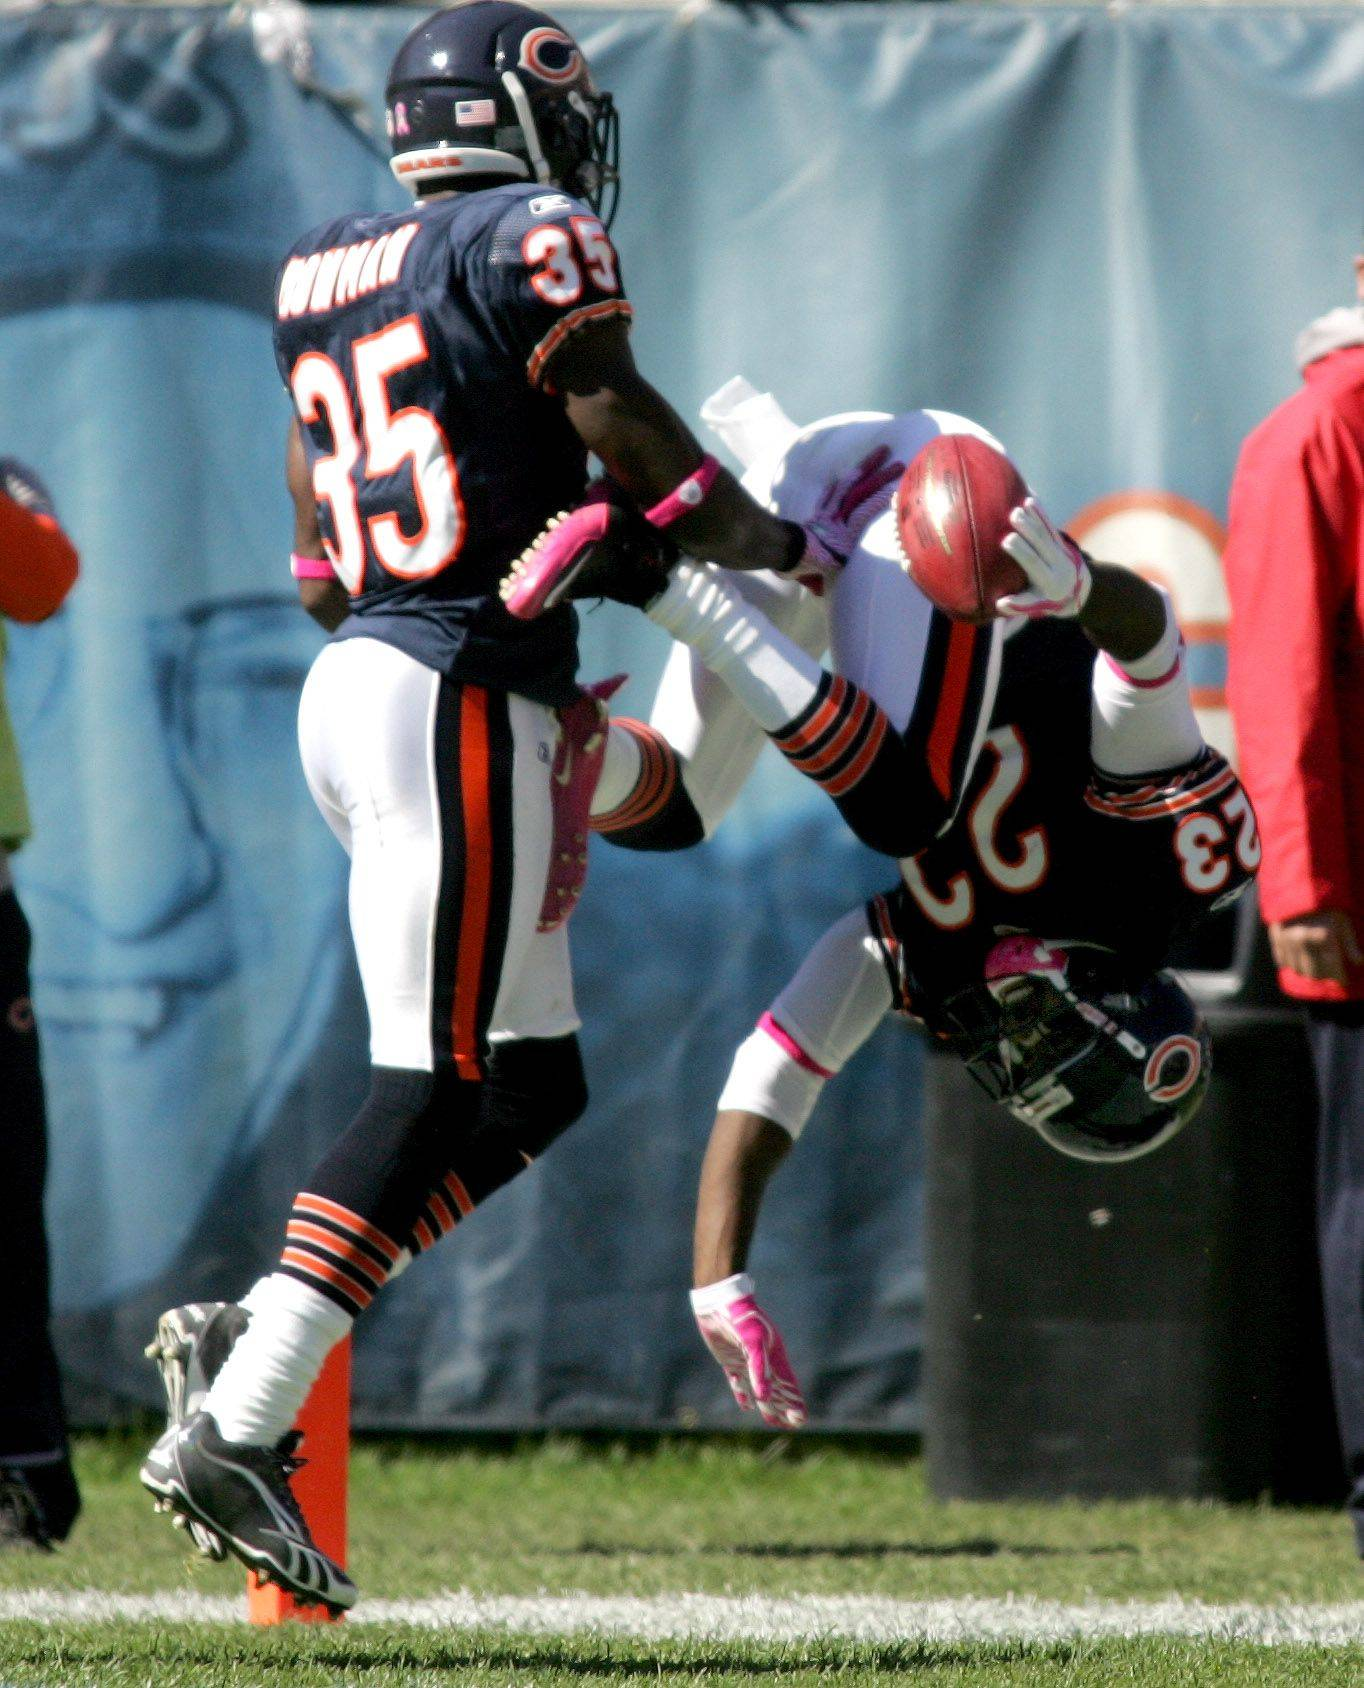 Devin Hester of the Chicago Bears makes a flip as he makes a touchdown in the 2nd quarter against Carolina Panthers.